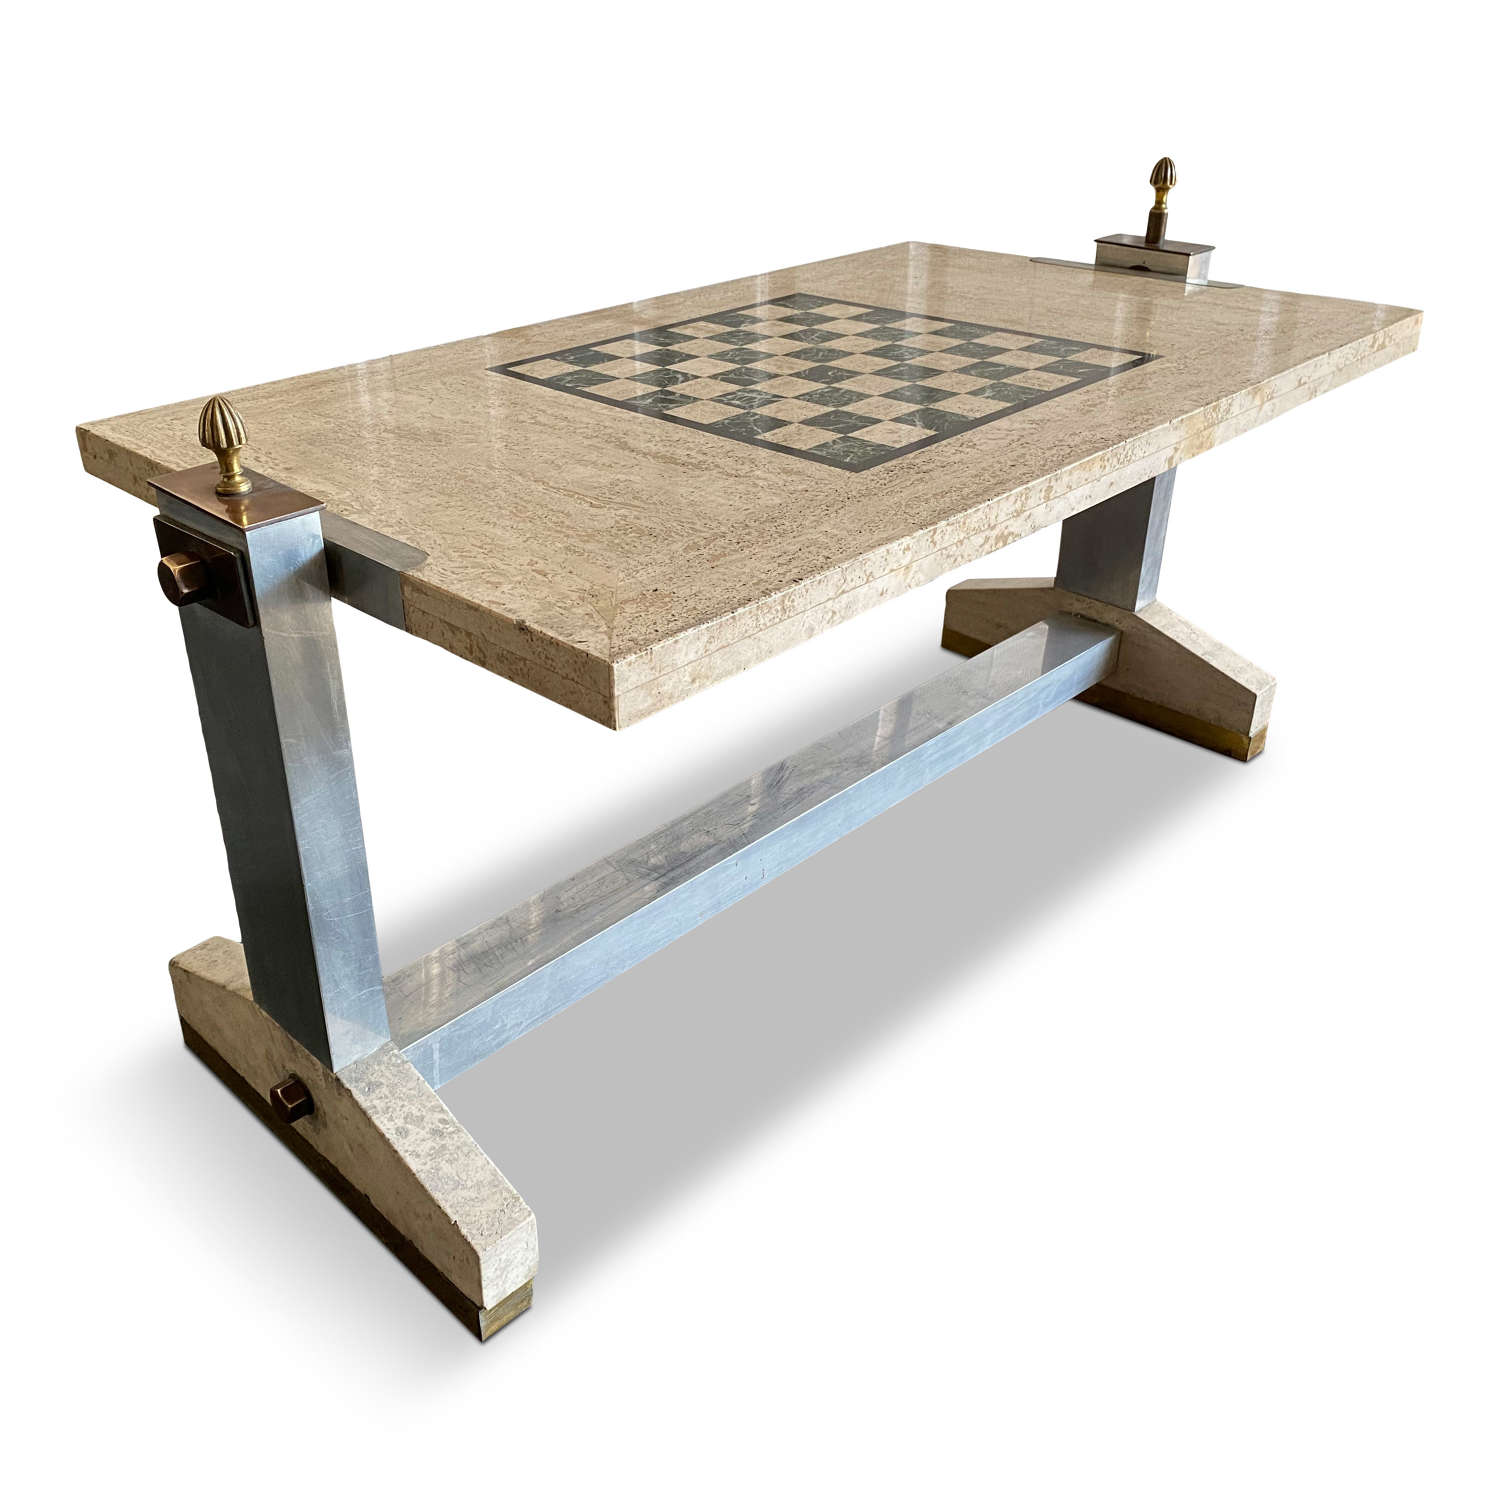 1970s Italian travertine, bronze and chrome games coffee table